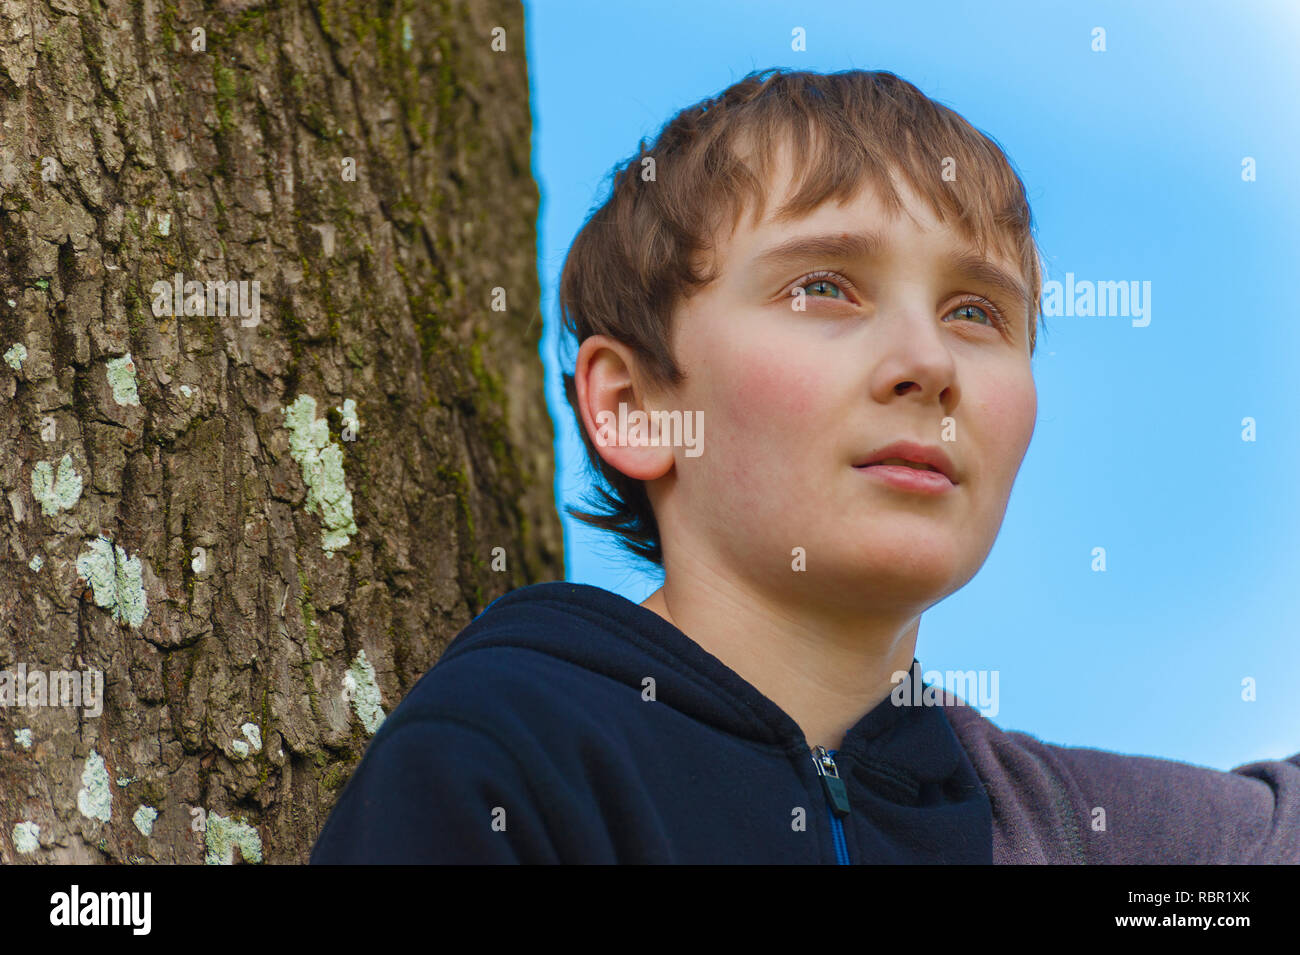 Close up of a young boy in a tree wearing a blue sweatshirt. - Stock Image